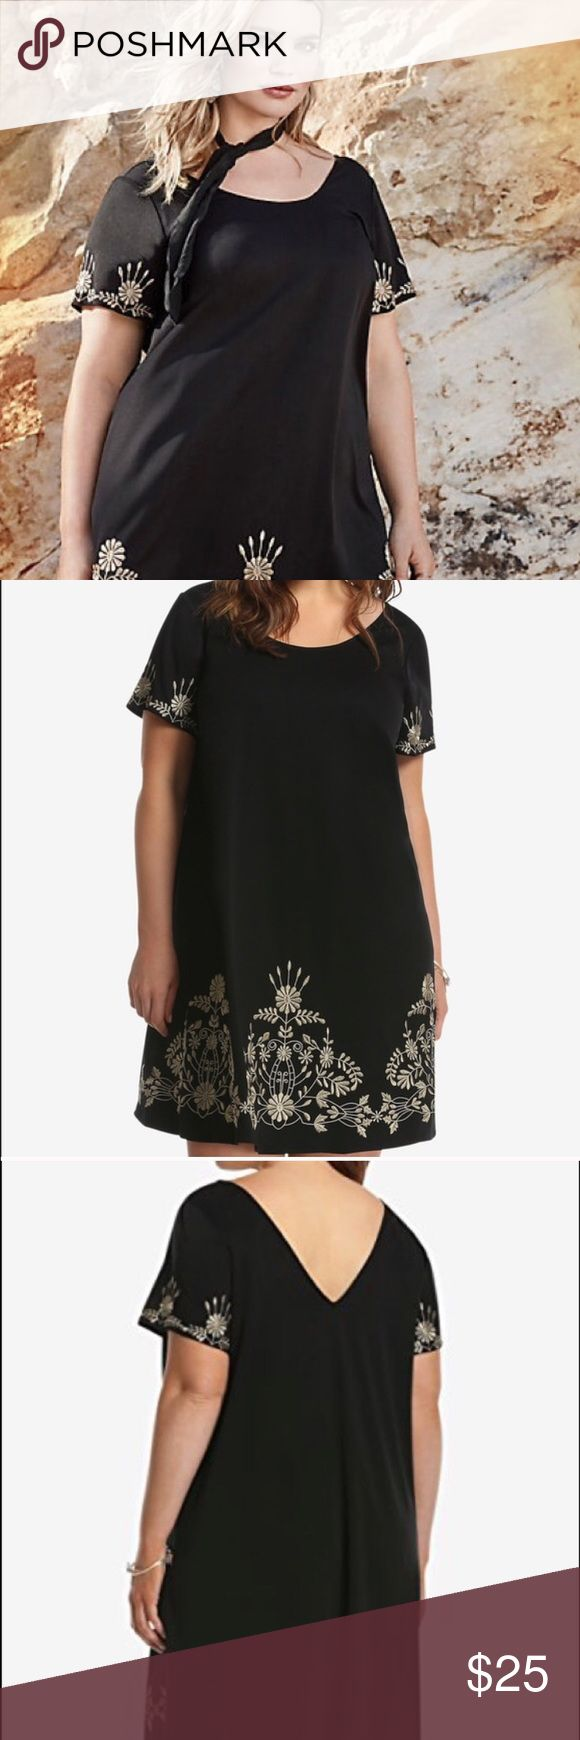 Online exclusive torrid dress Worn once. It's beautiful! Perfect for a holiday party. Torrid size 1 torrid Dresses